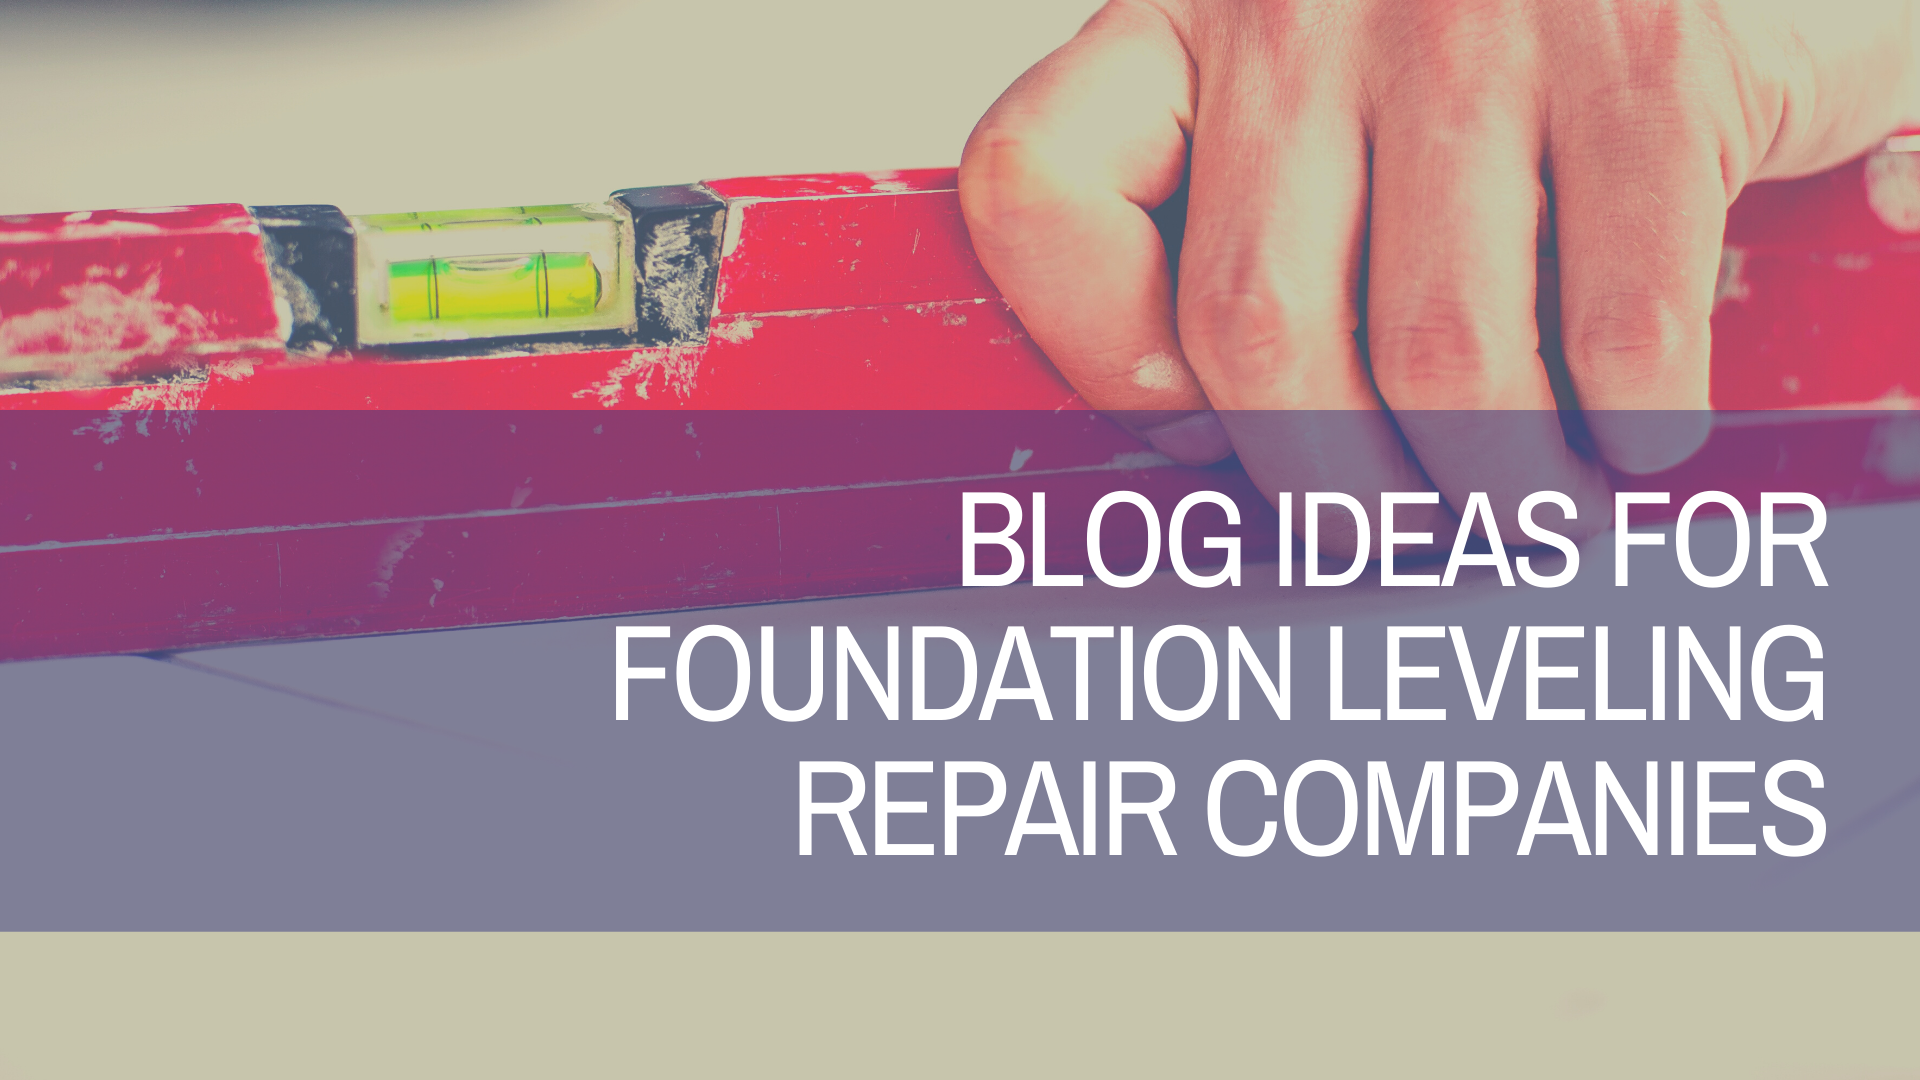 5 Blog Ideas for Foundation Leveling Repair Companies